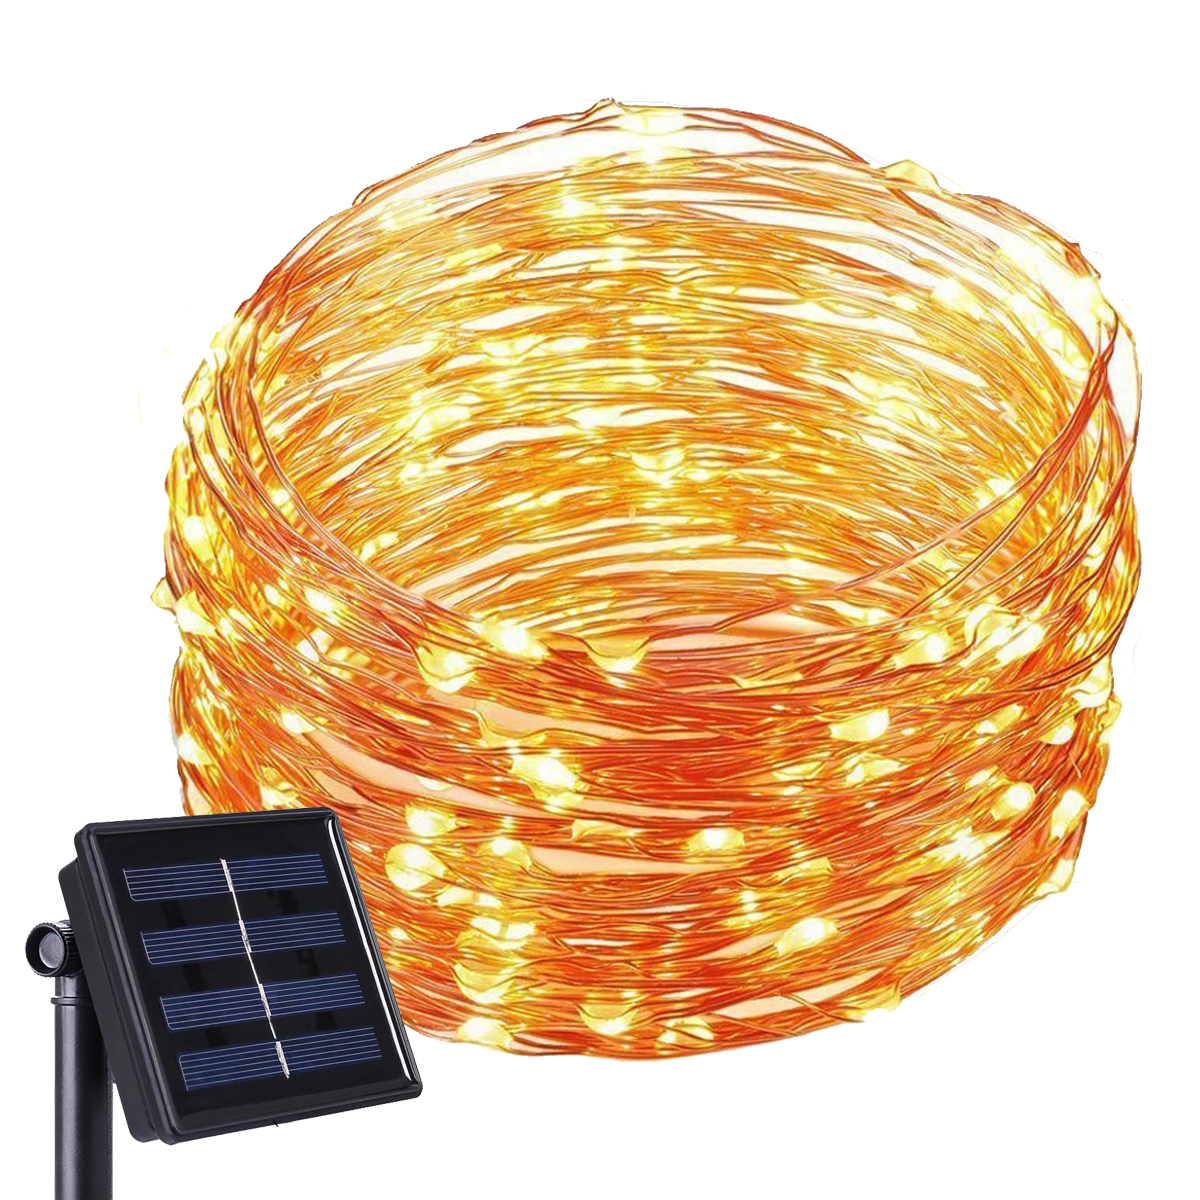 Solar Powered String Light, Kohree 120 Micro LEDs Light String with 20ft Long Ultra Thin String Copper Wire